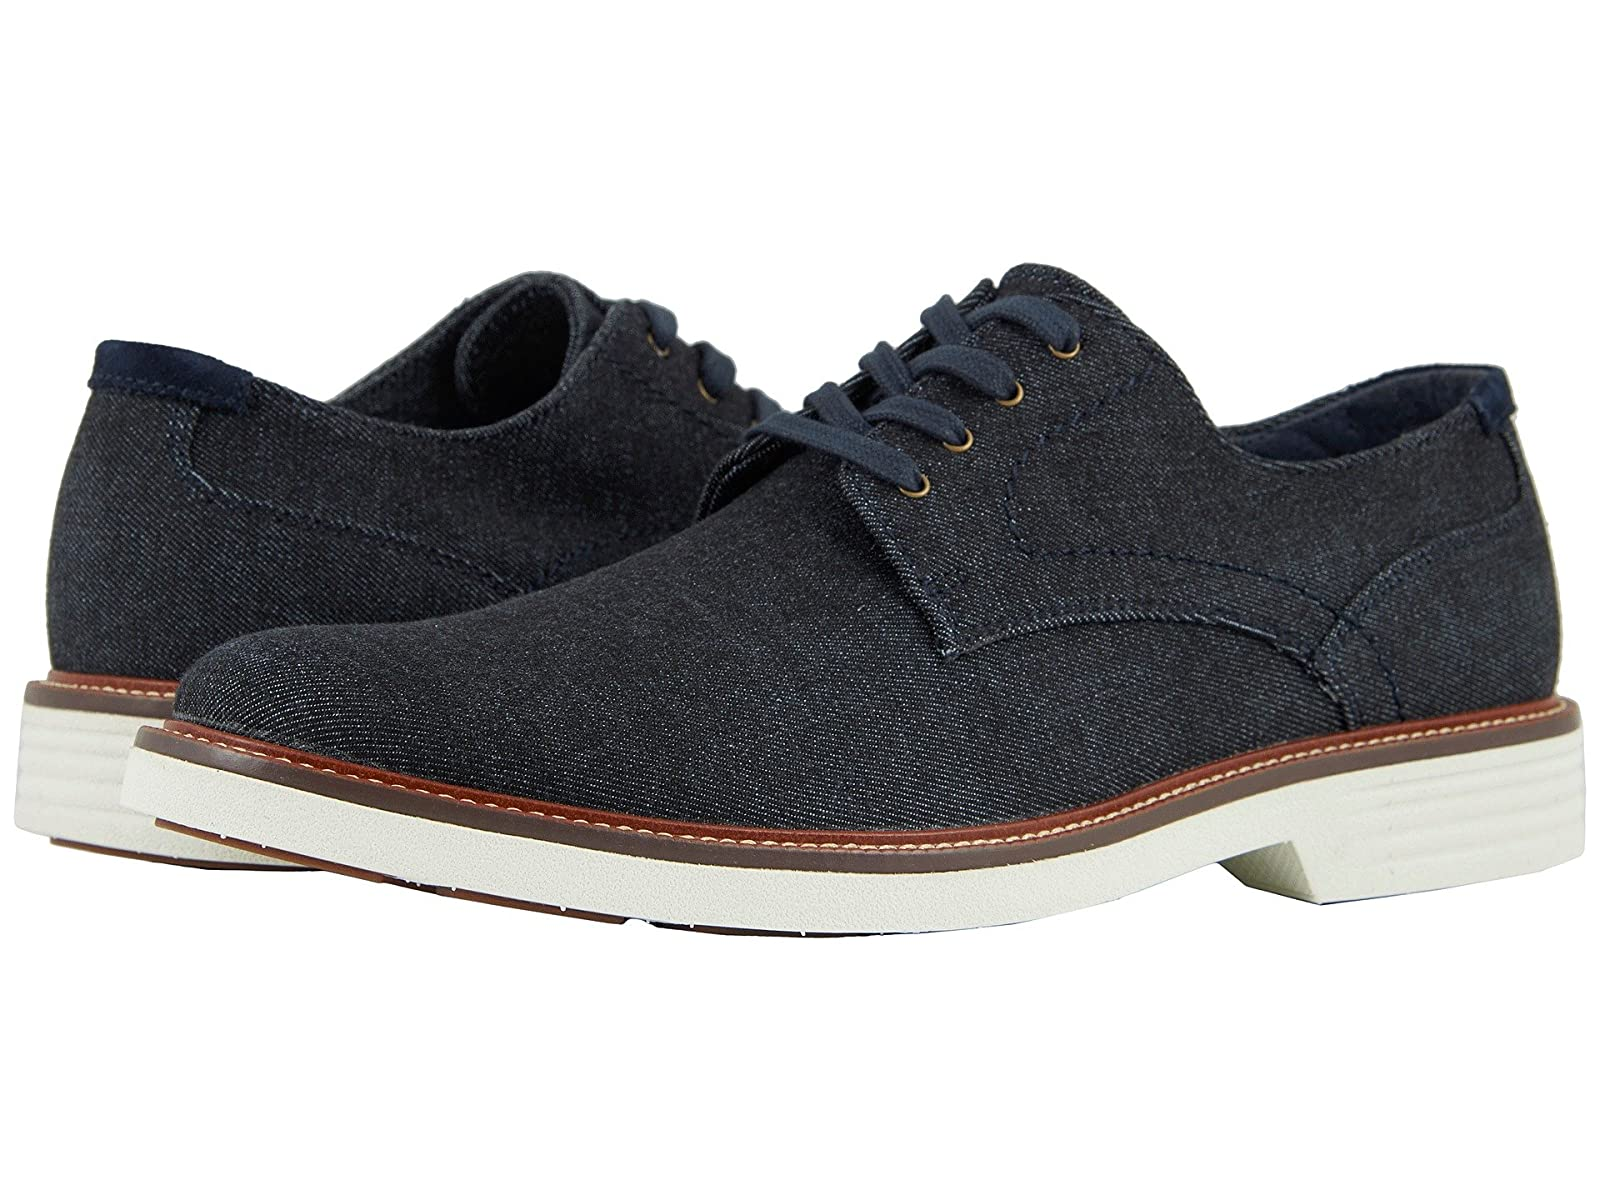 Dockers Parkway 360 Plain Toe OxfordAtmospheric grades have affordable shoes